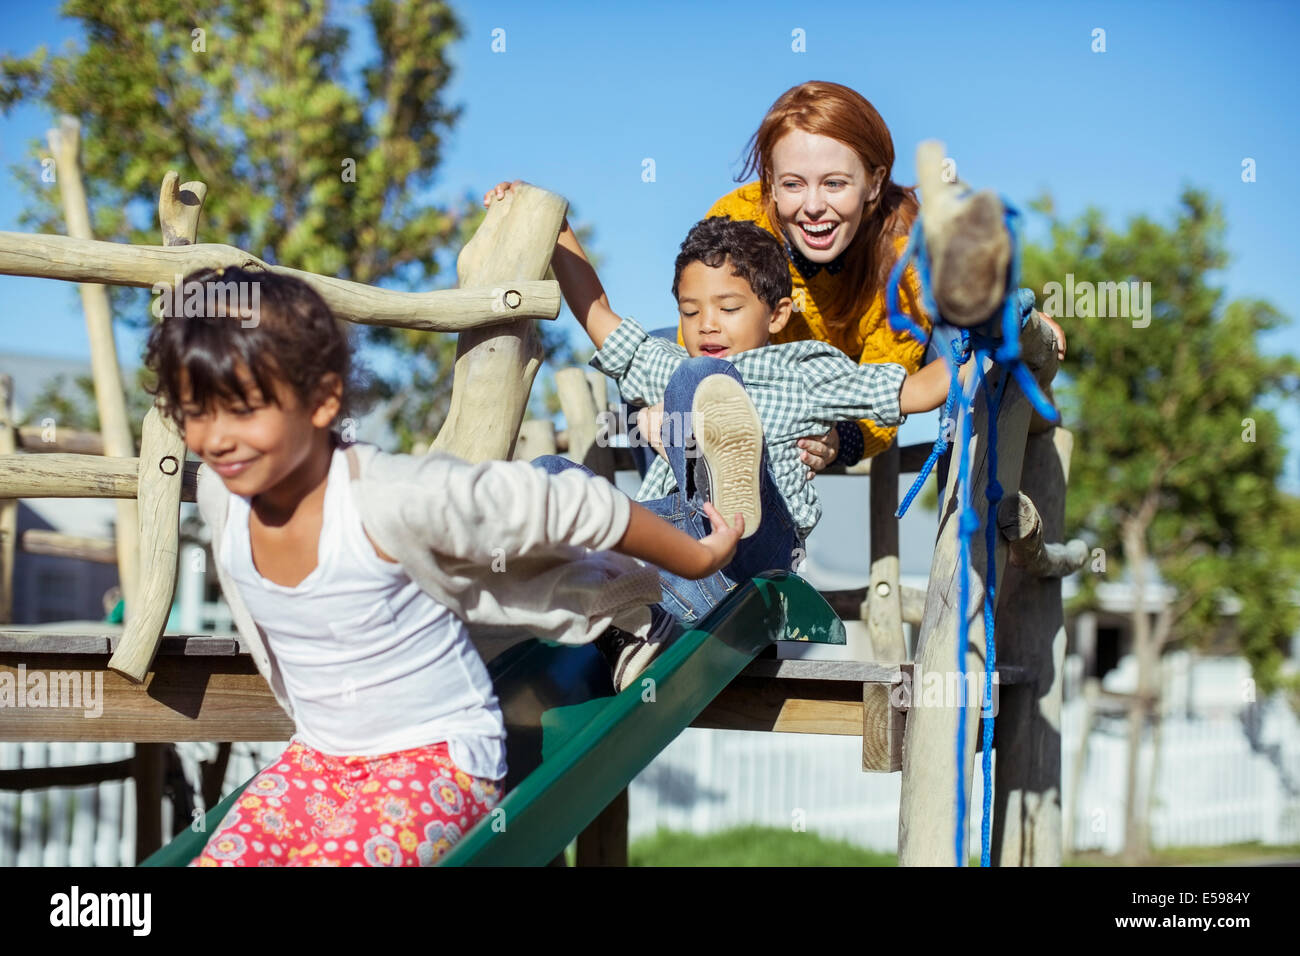 Teacher and students playing on playground - Stock Image